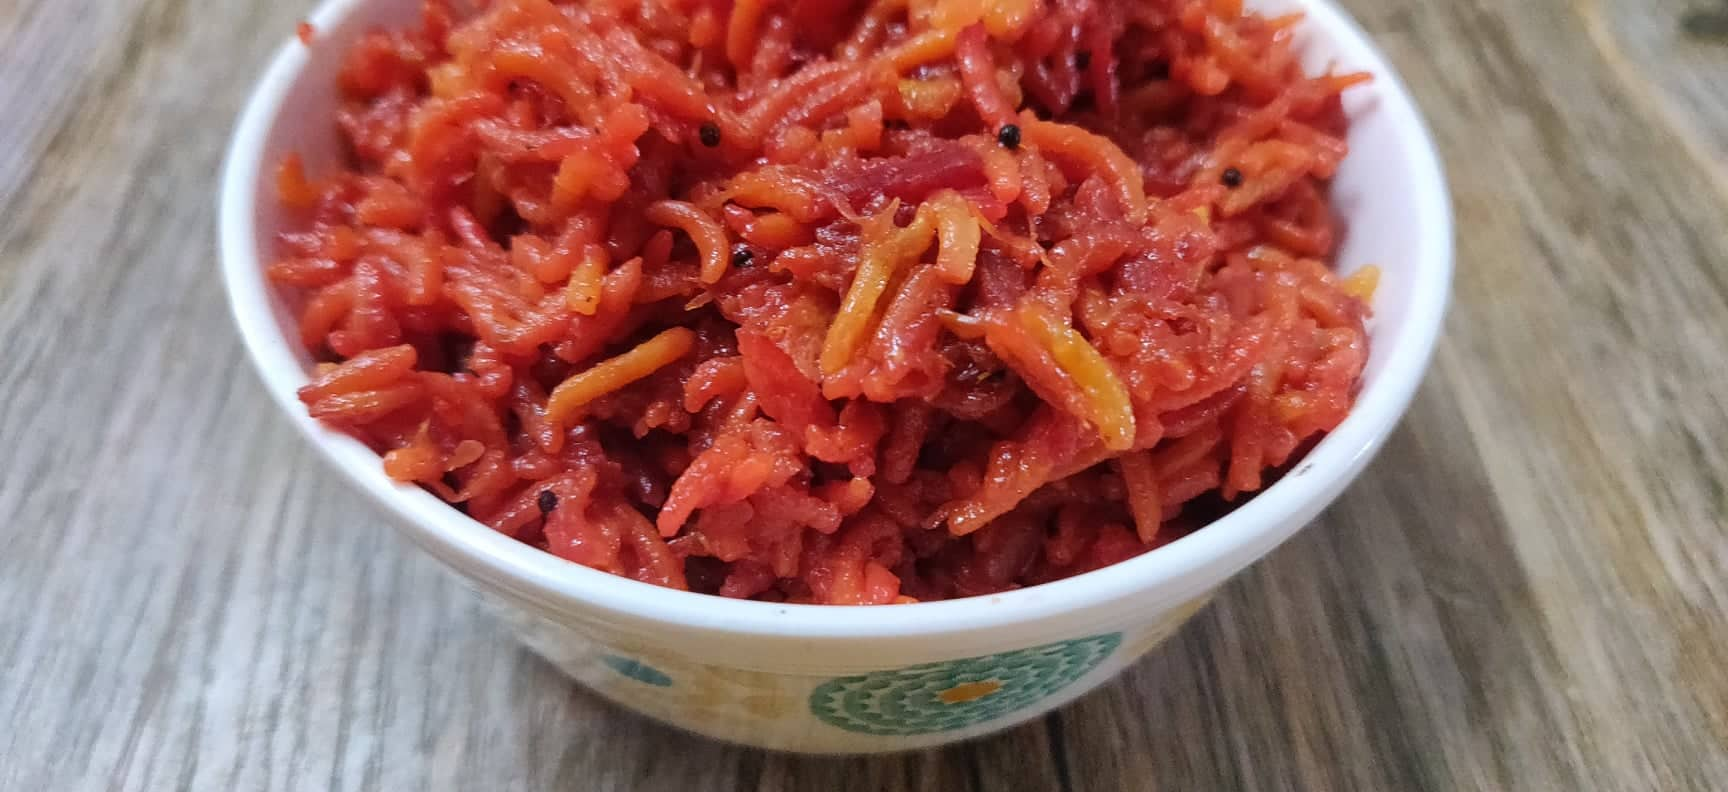 beetroot_rice - 82528419_201211174338725_2042375773813211136_n